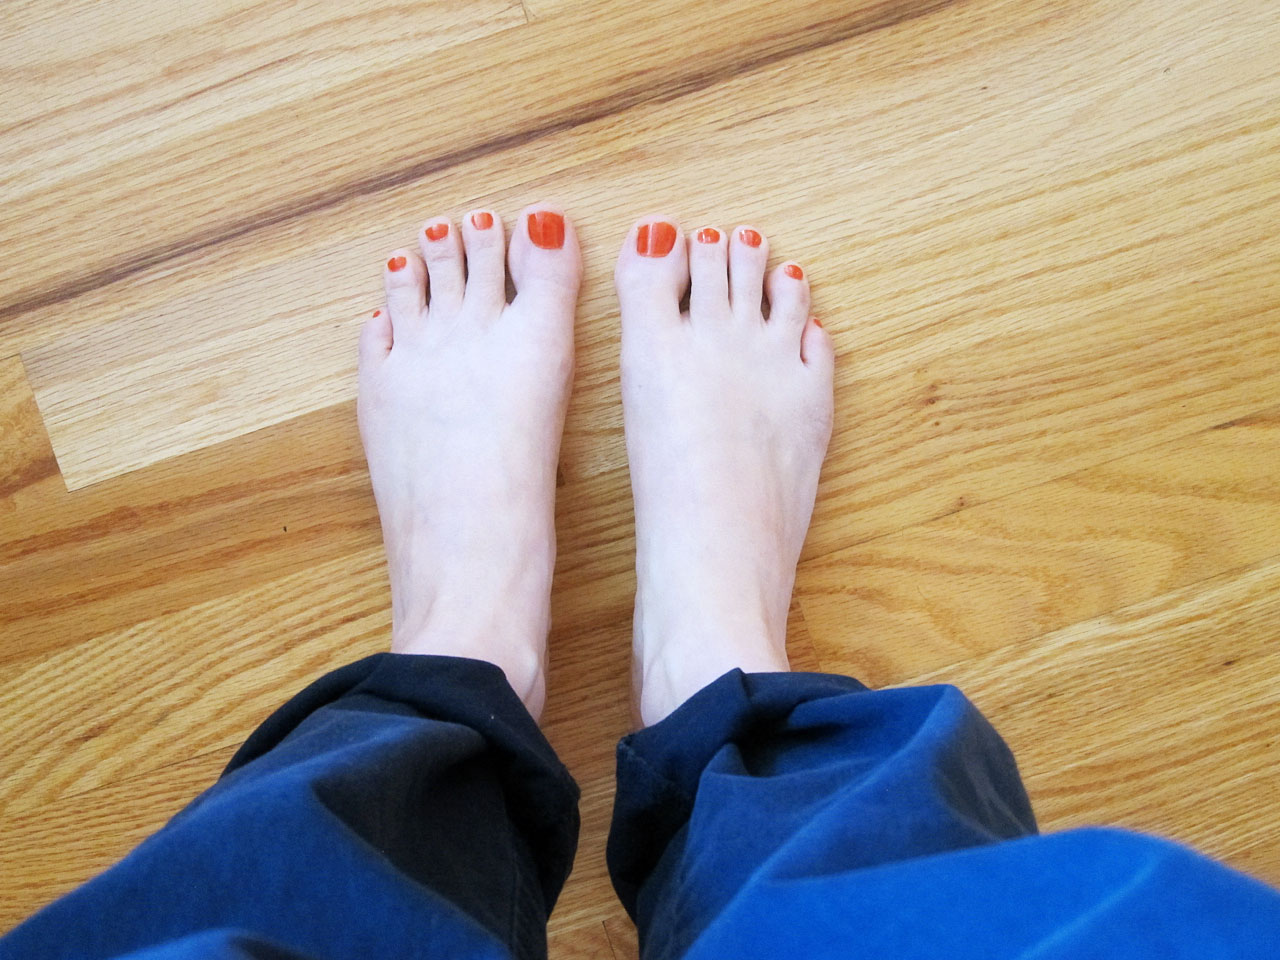 Orange toenails